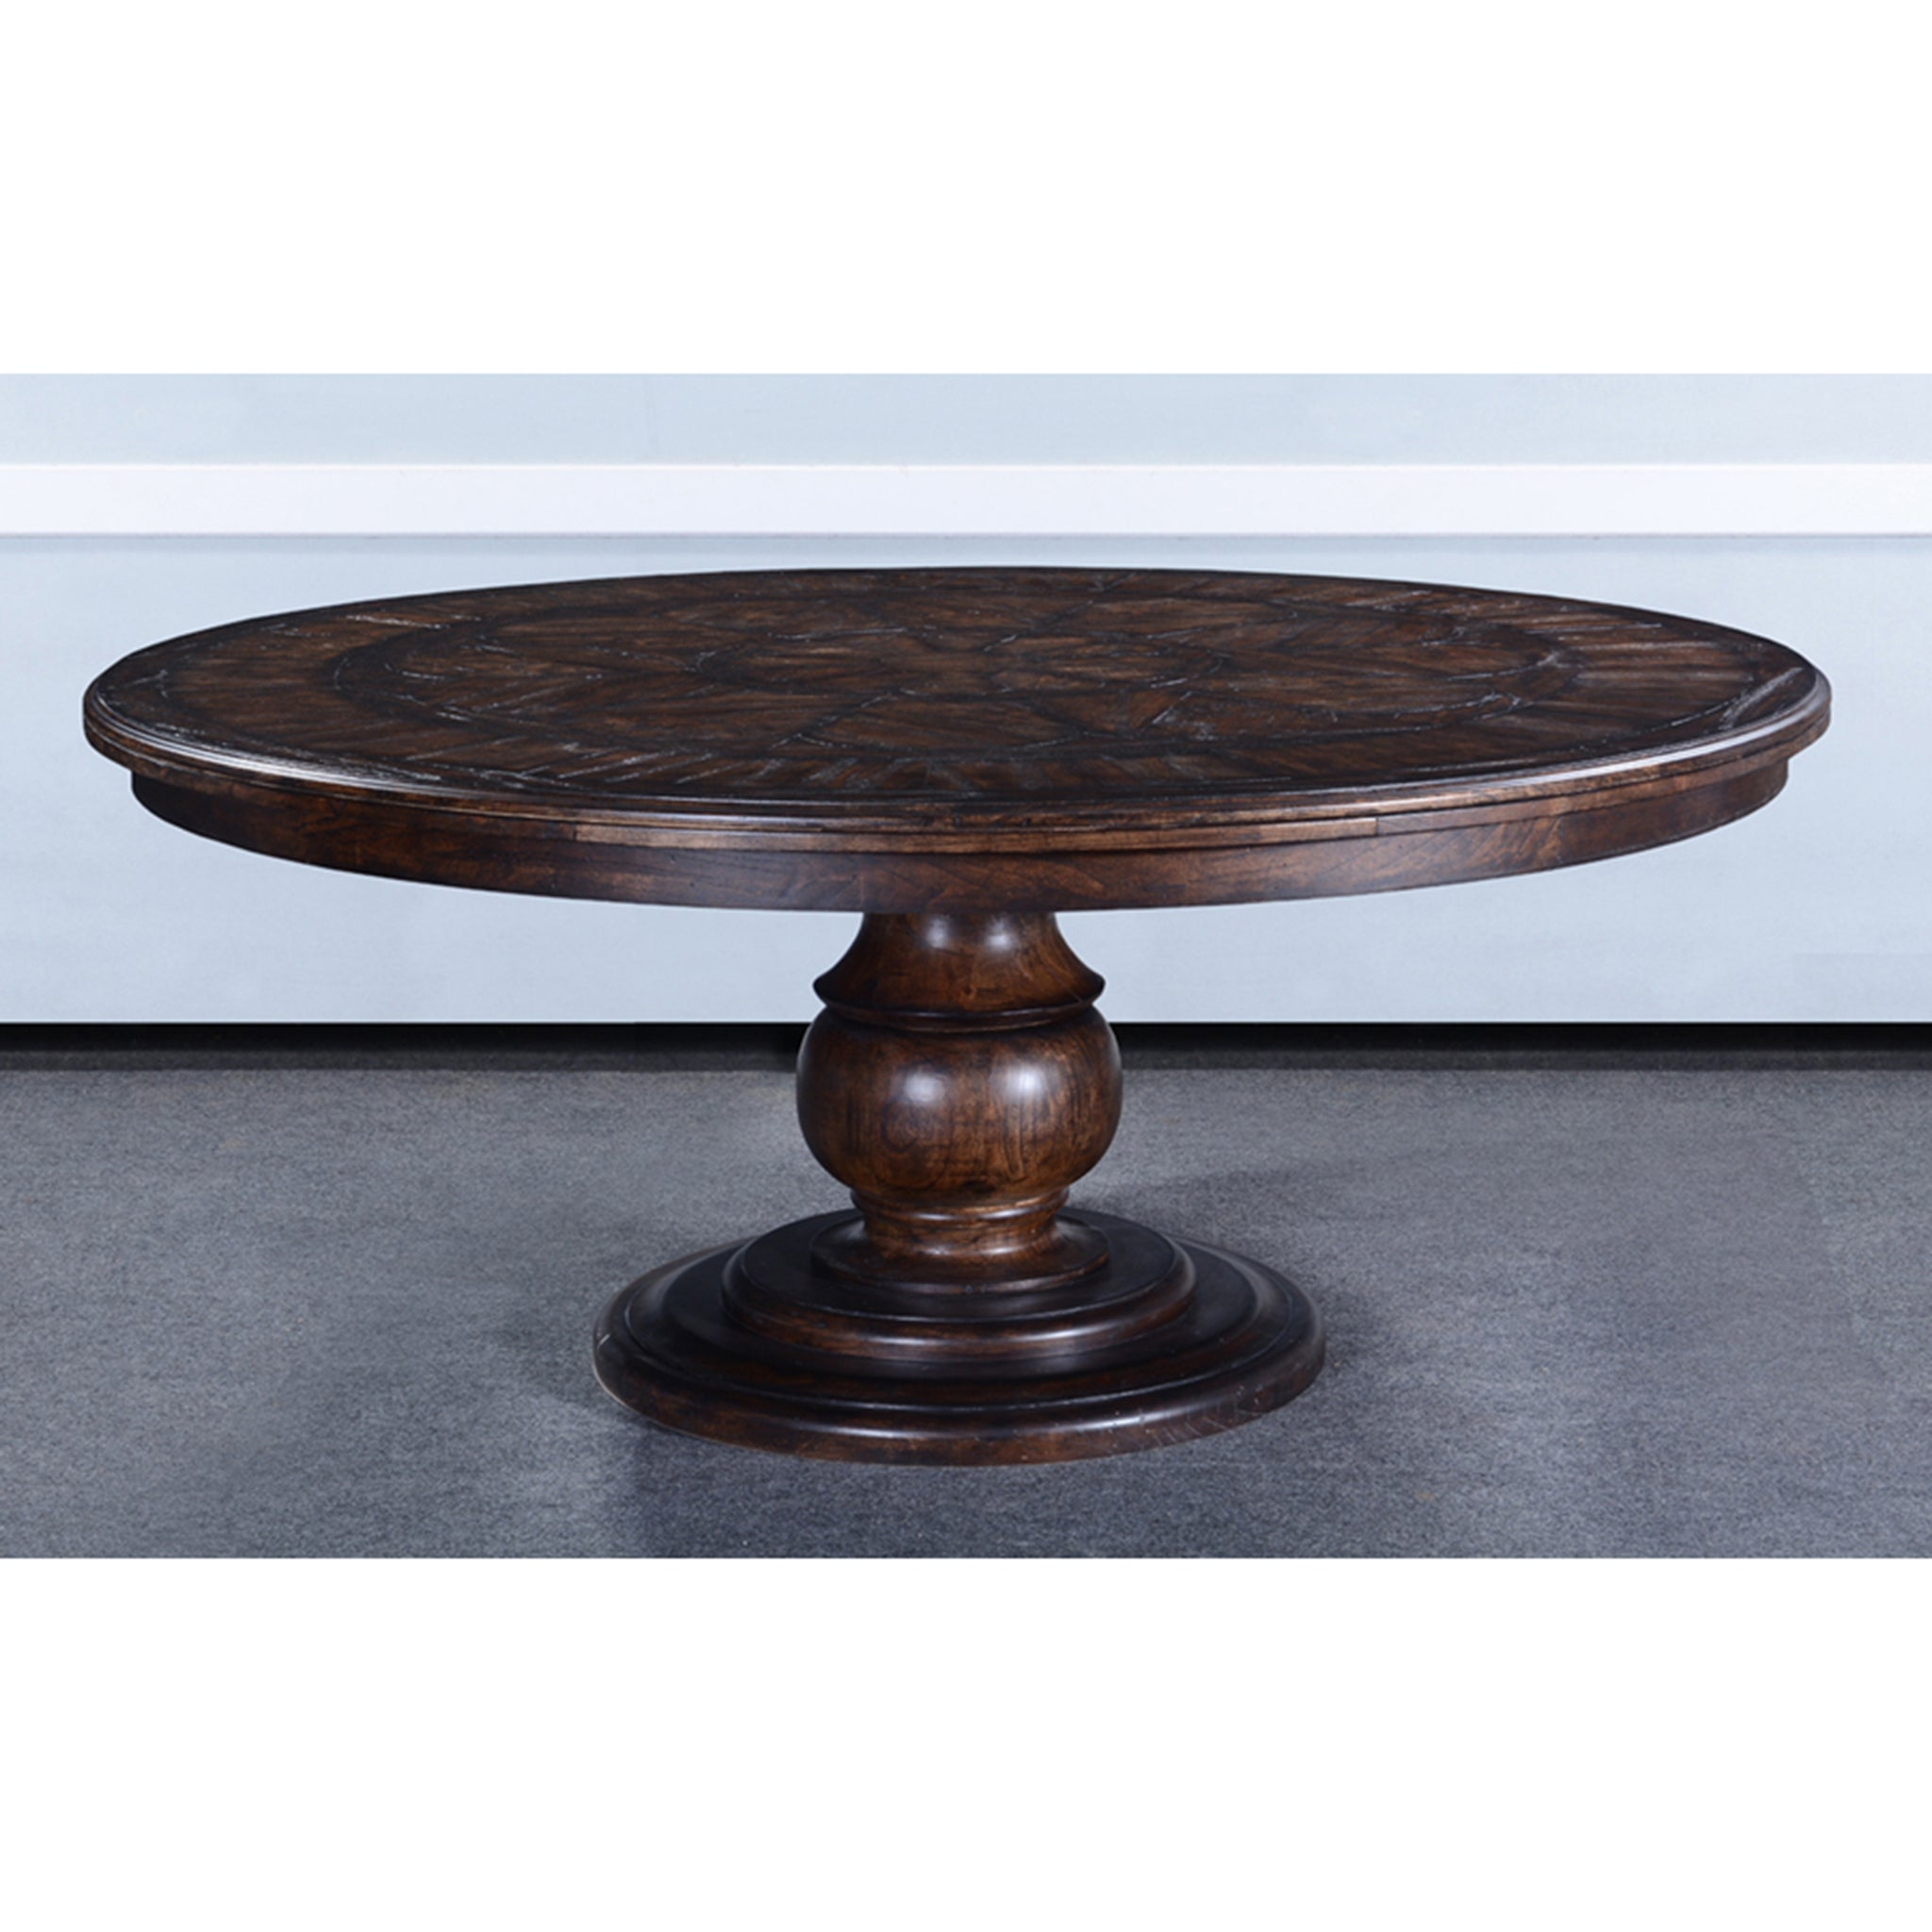 "Olde World Antique Walnut 72"" Round Dining Table - Furniture on Main"